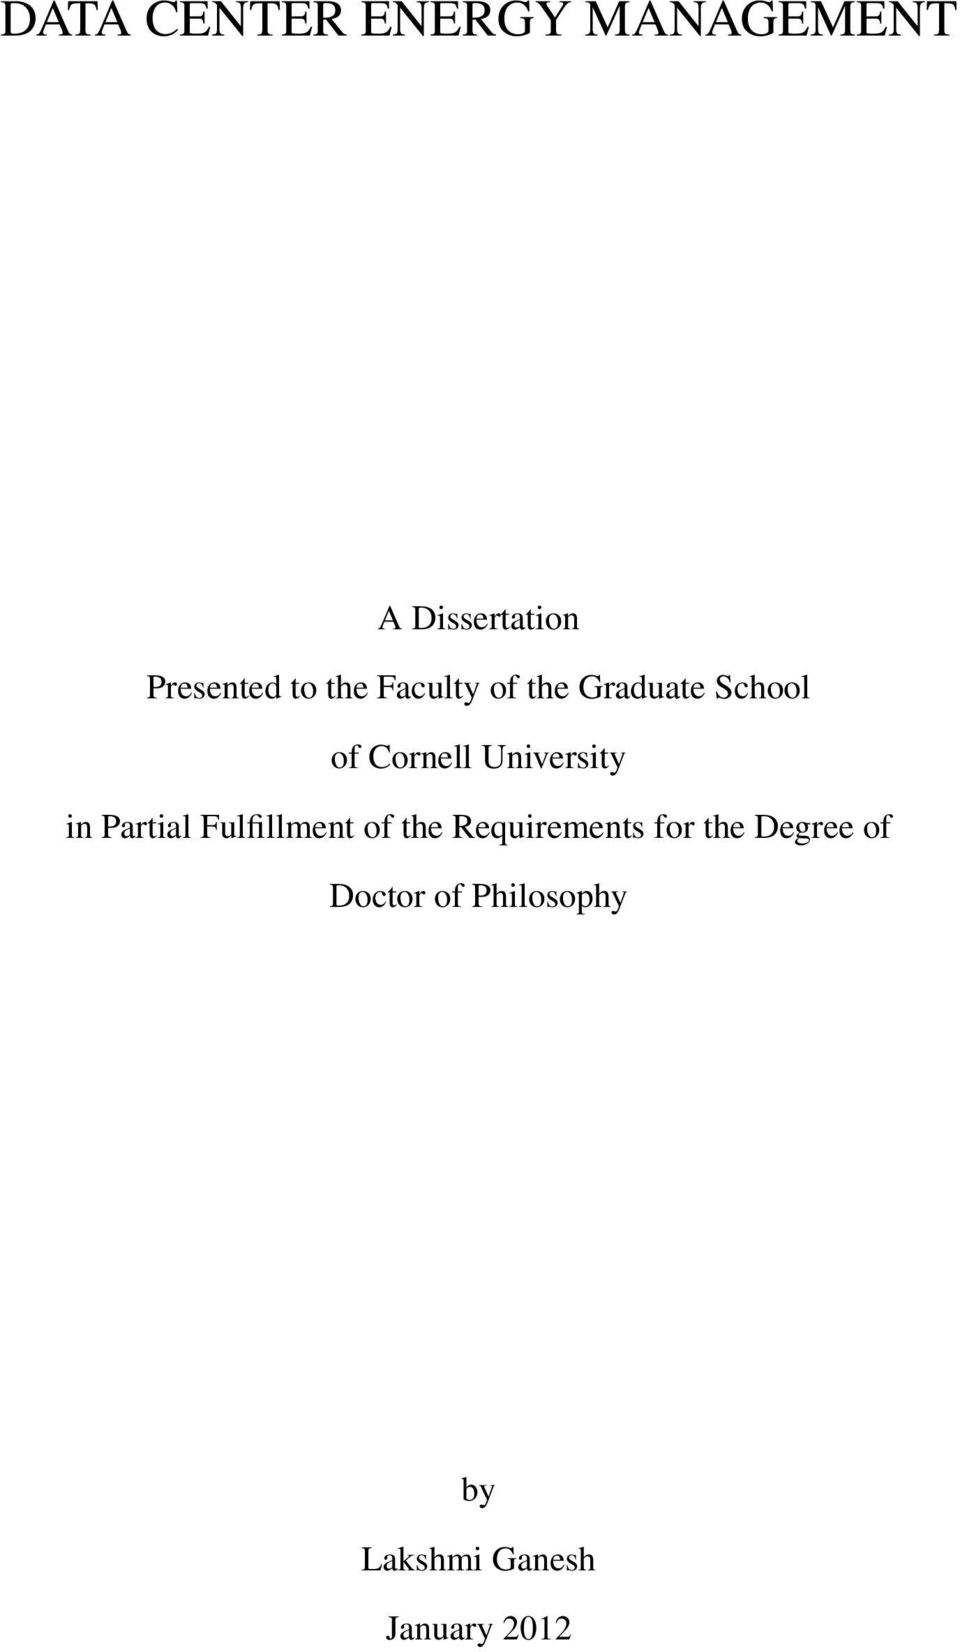 University in Partial Fulfillment of the Requirements